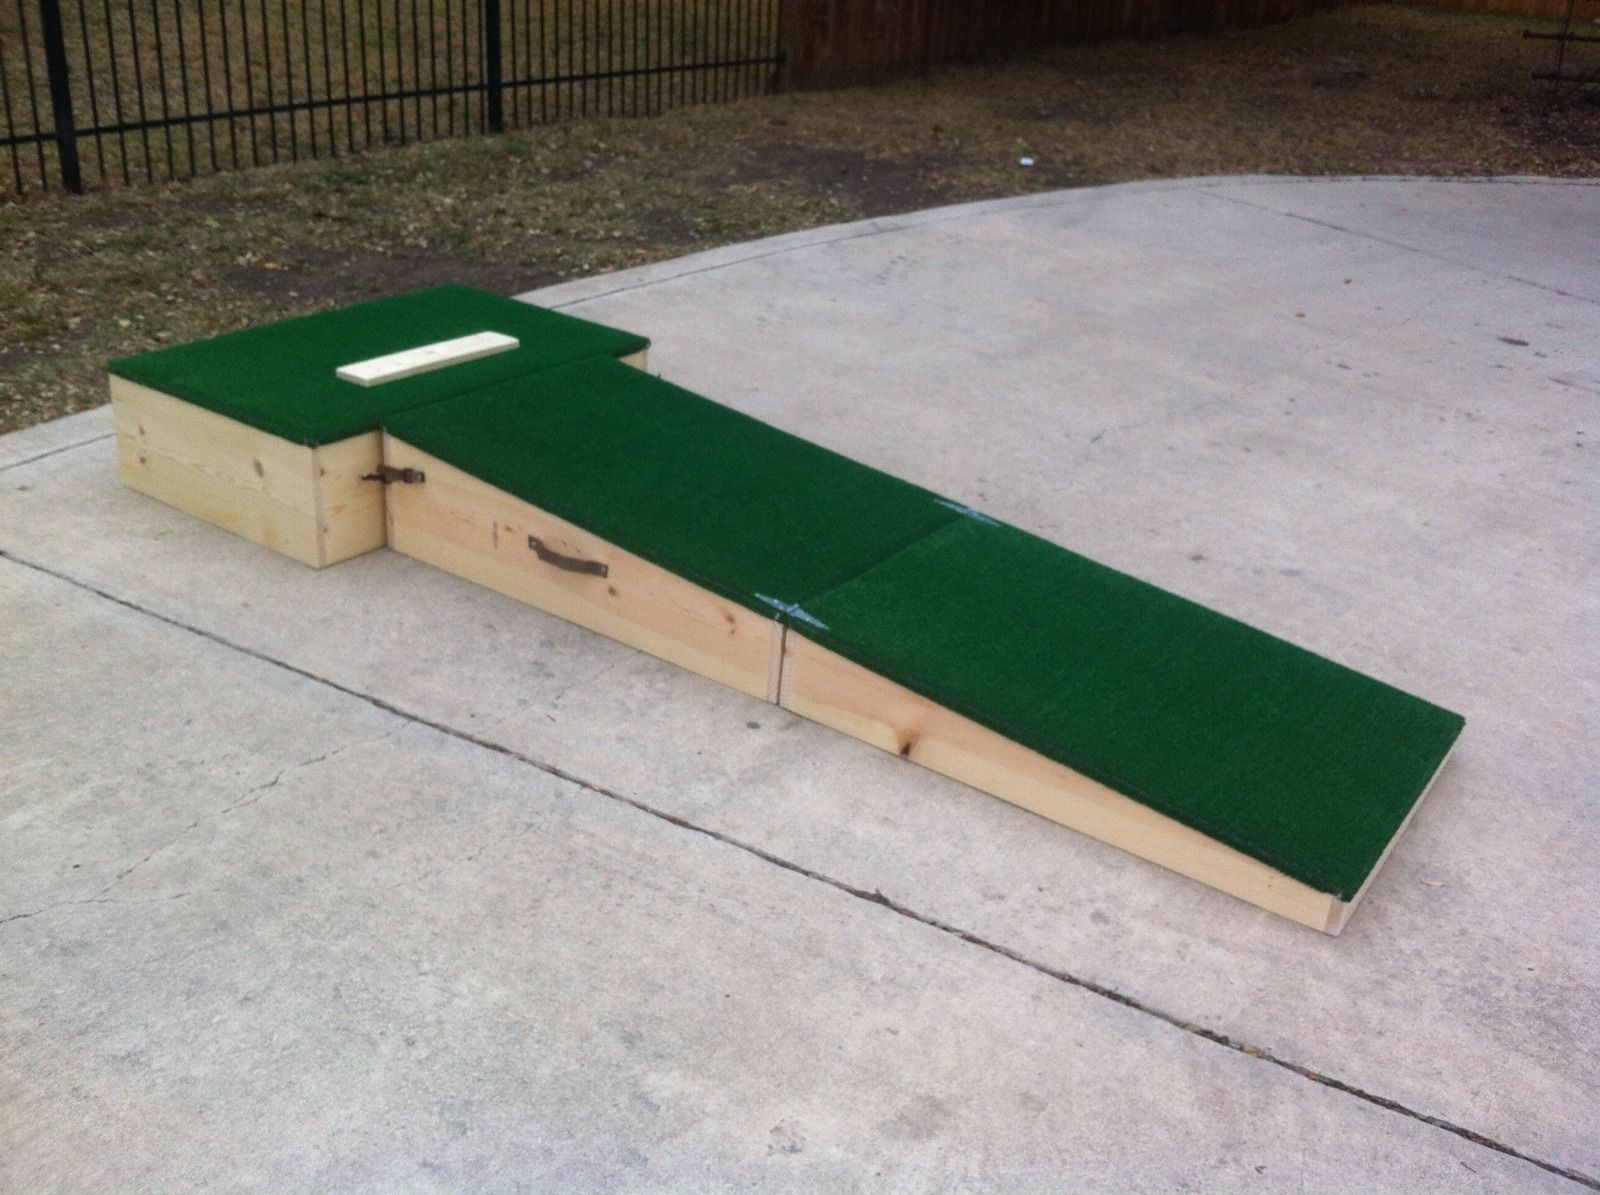 How To Build A Portable Pitching Mound >> How to Build a Baseball Pitching Mound | eBay